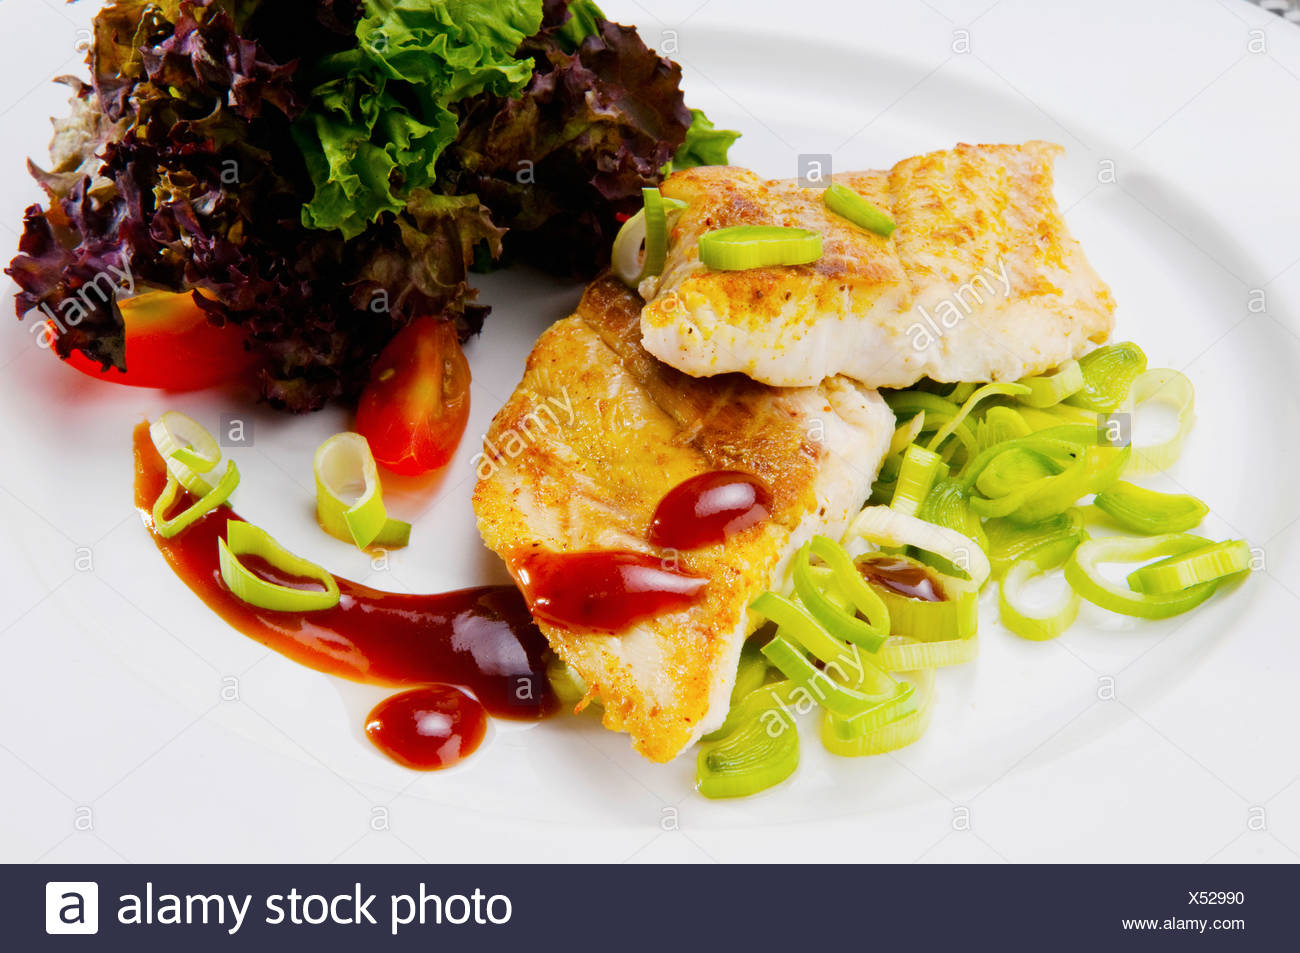 Close-up of a dish of fish fillets - Stock Image